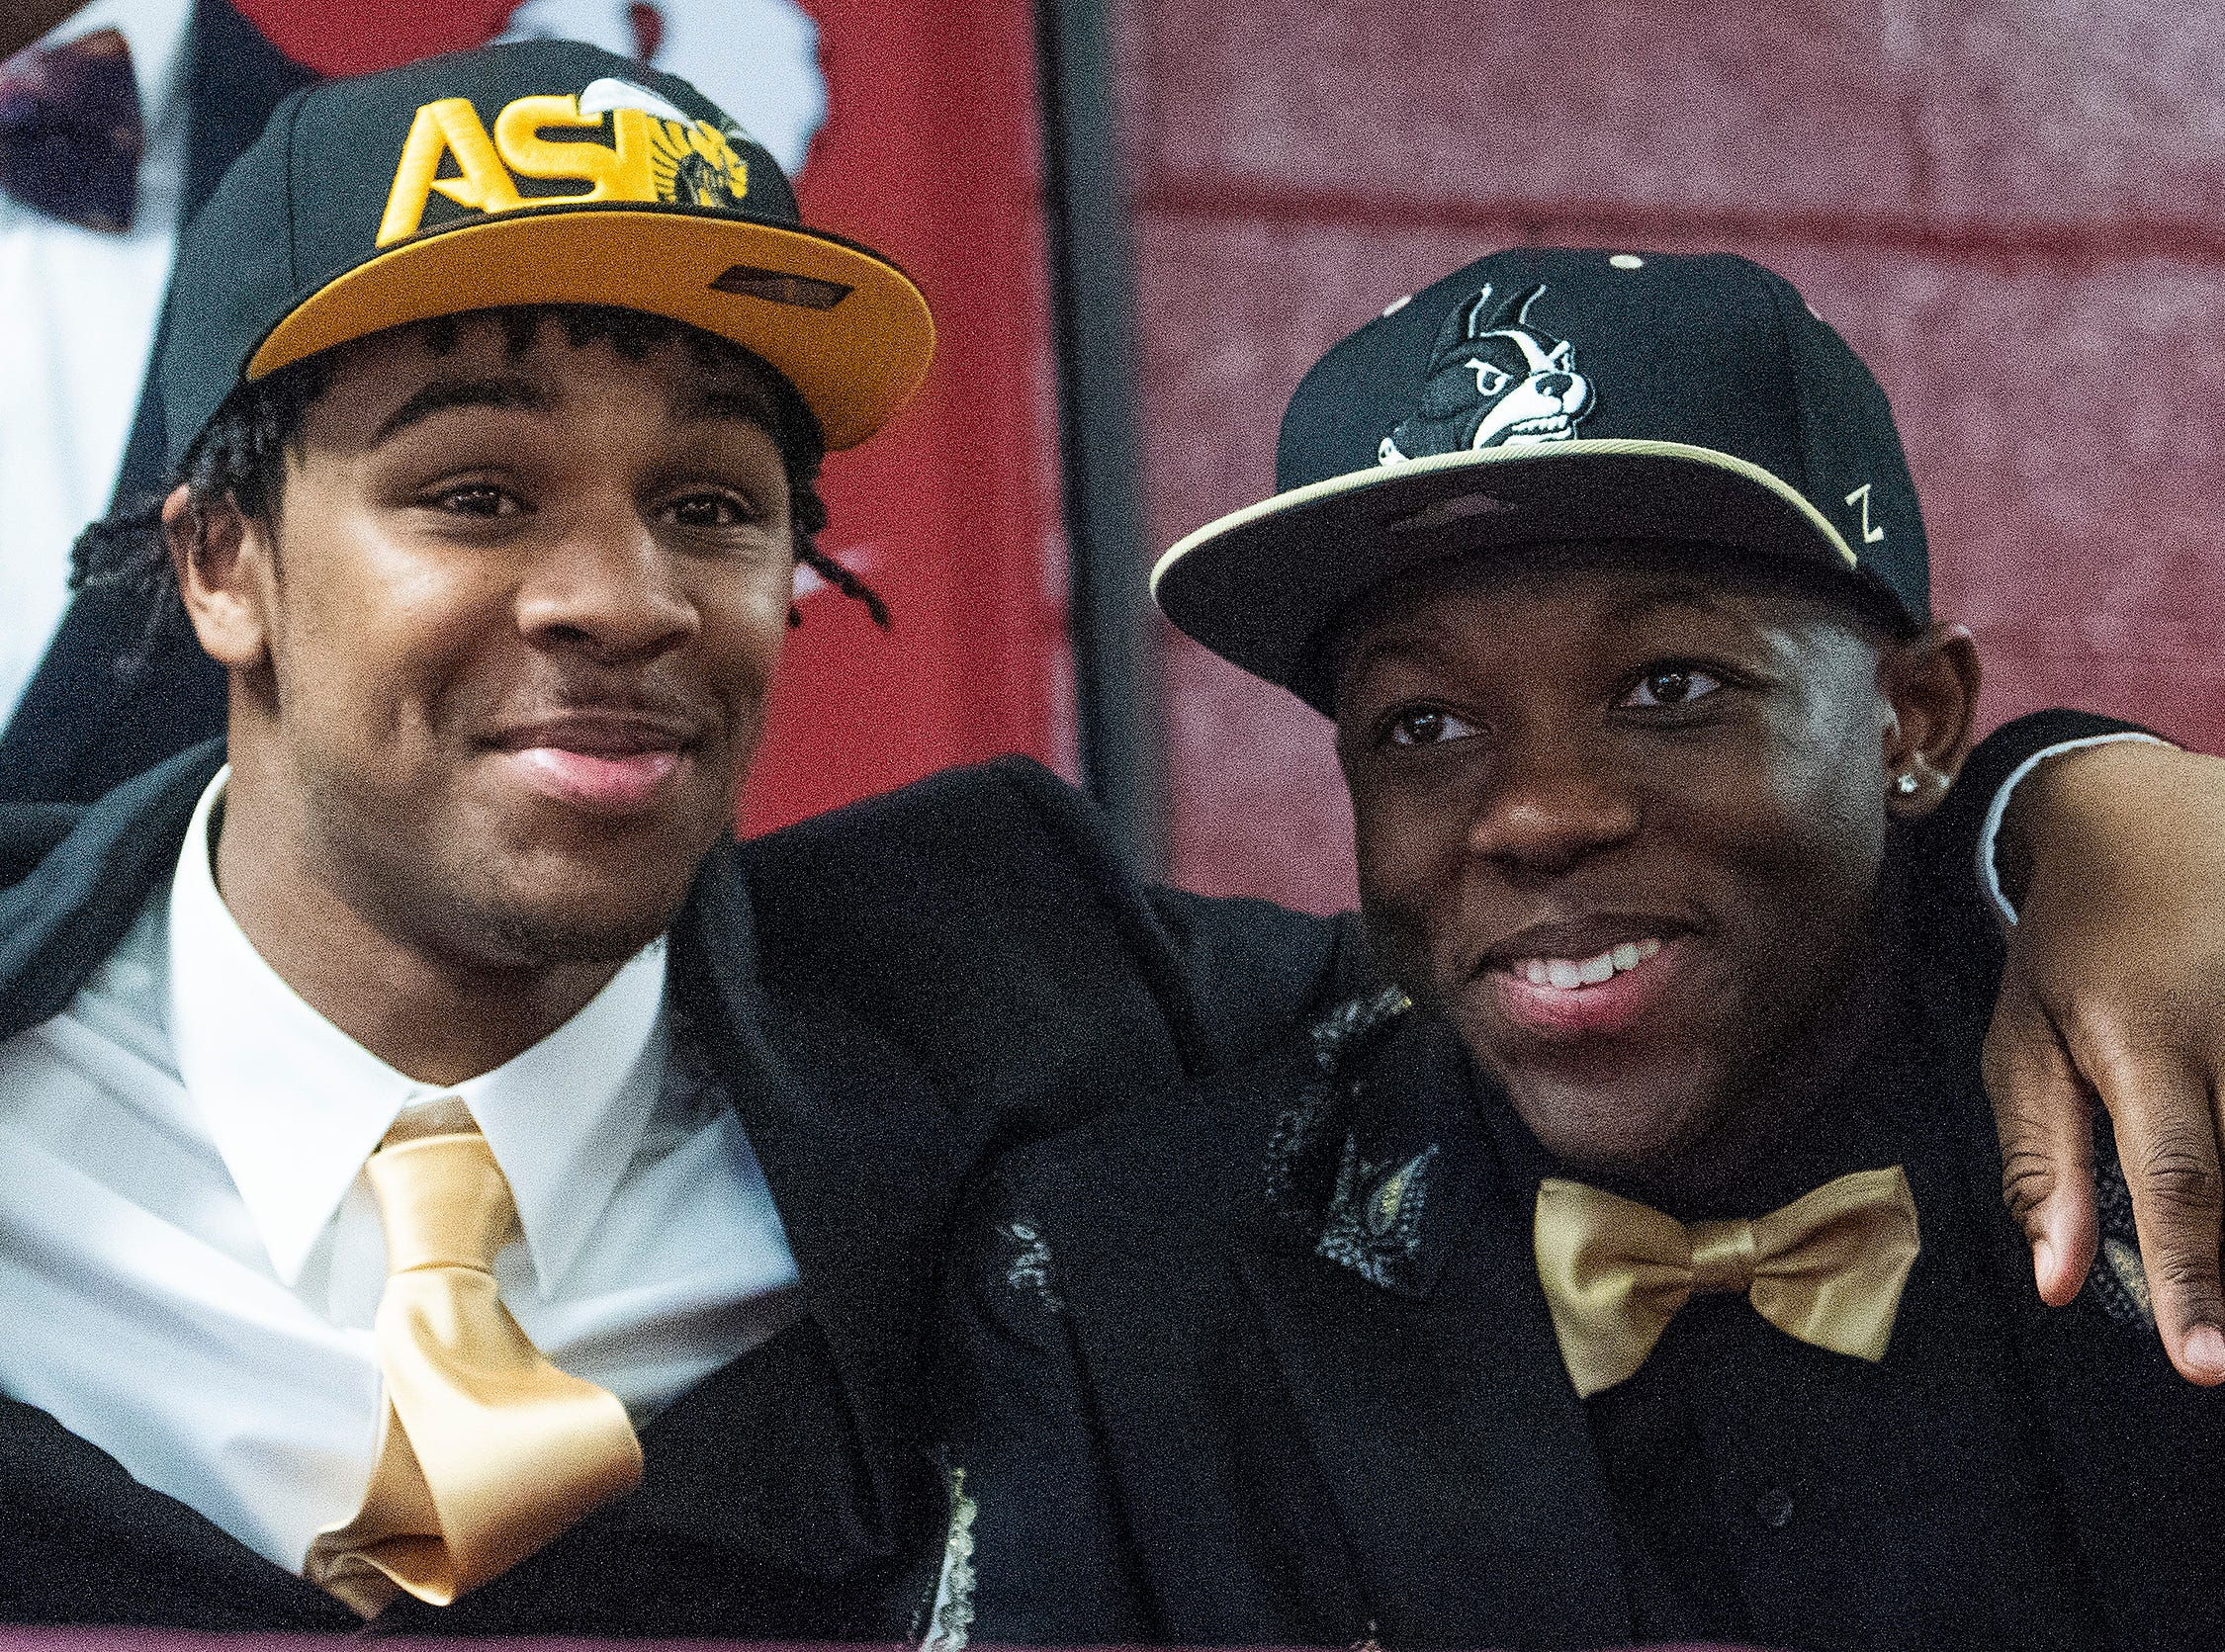 Prattville's Jake Howard, left, and Jacquez Allen during college football signing day at the school's campus in Pratttville, Ala., on Wednesday February 6, 2019.